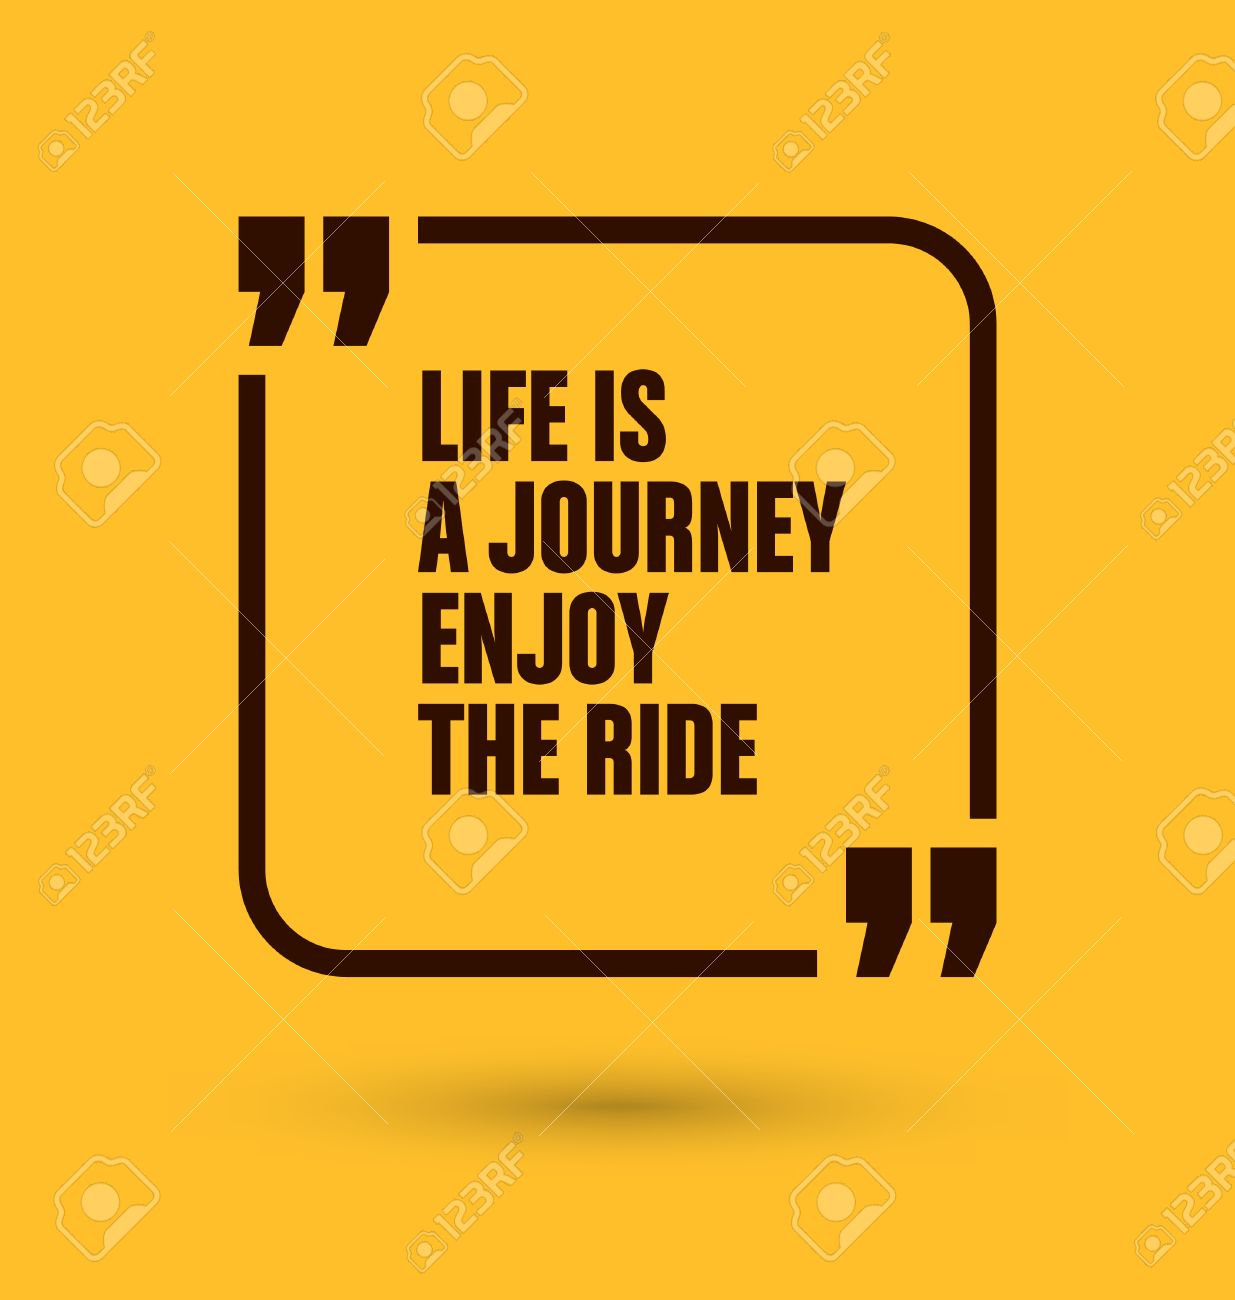 Framed Quote on Yellow Background - Life is a journey enjoy the ride - 45168594